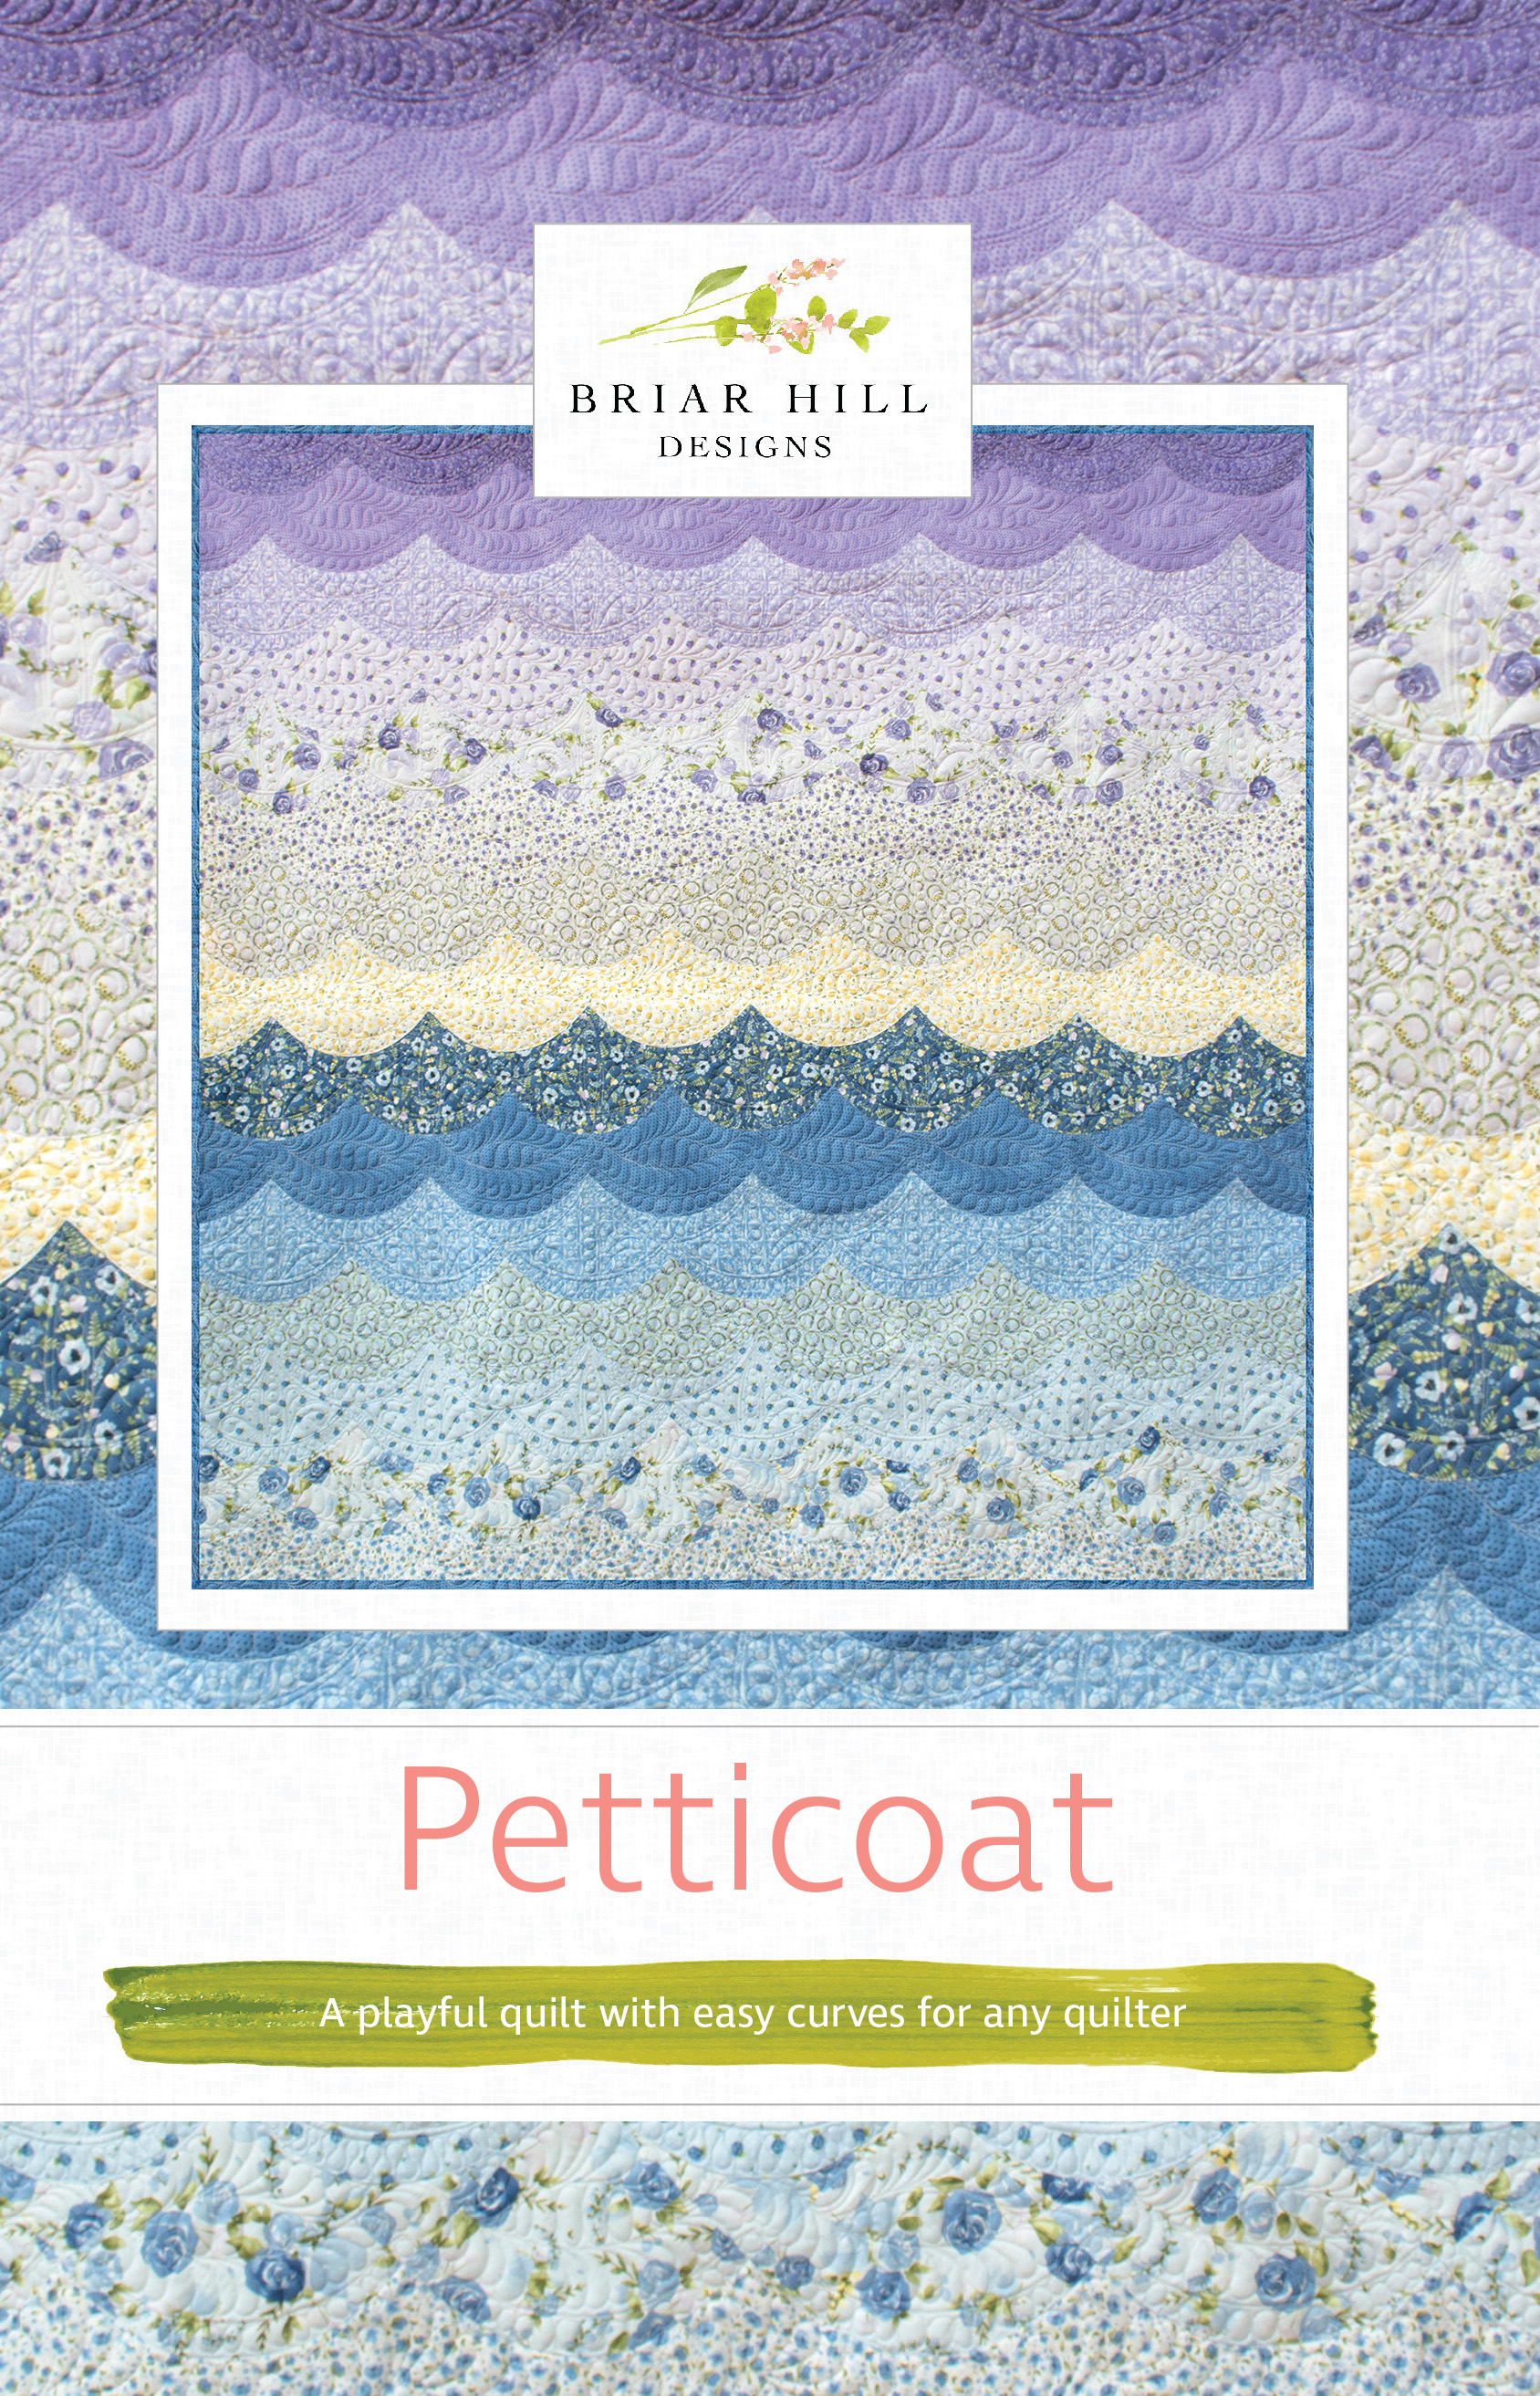 petticoat quilt by Briar Hill designs using the Classic curves ruler